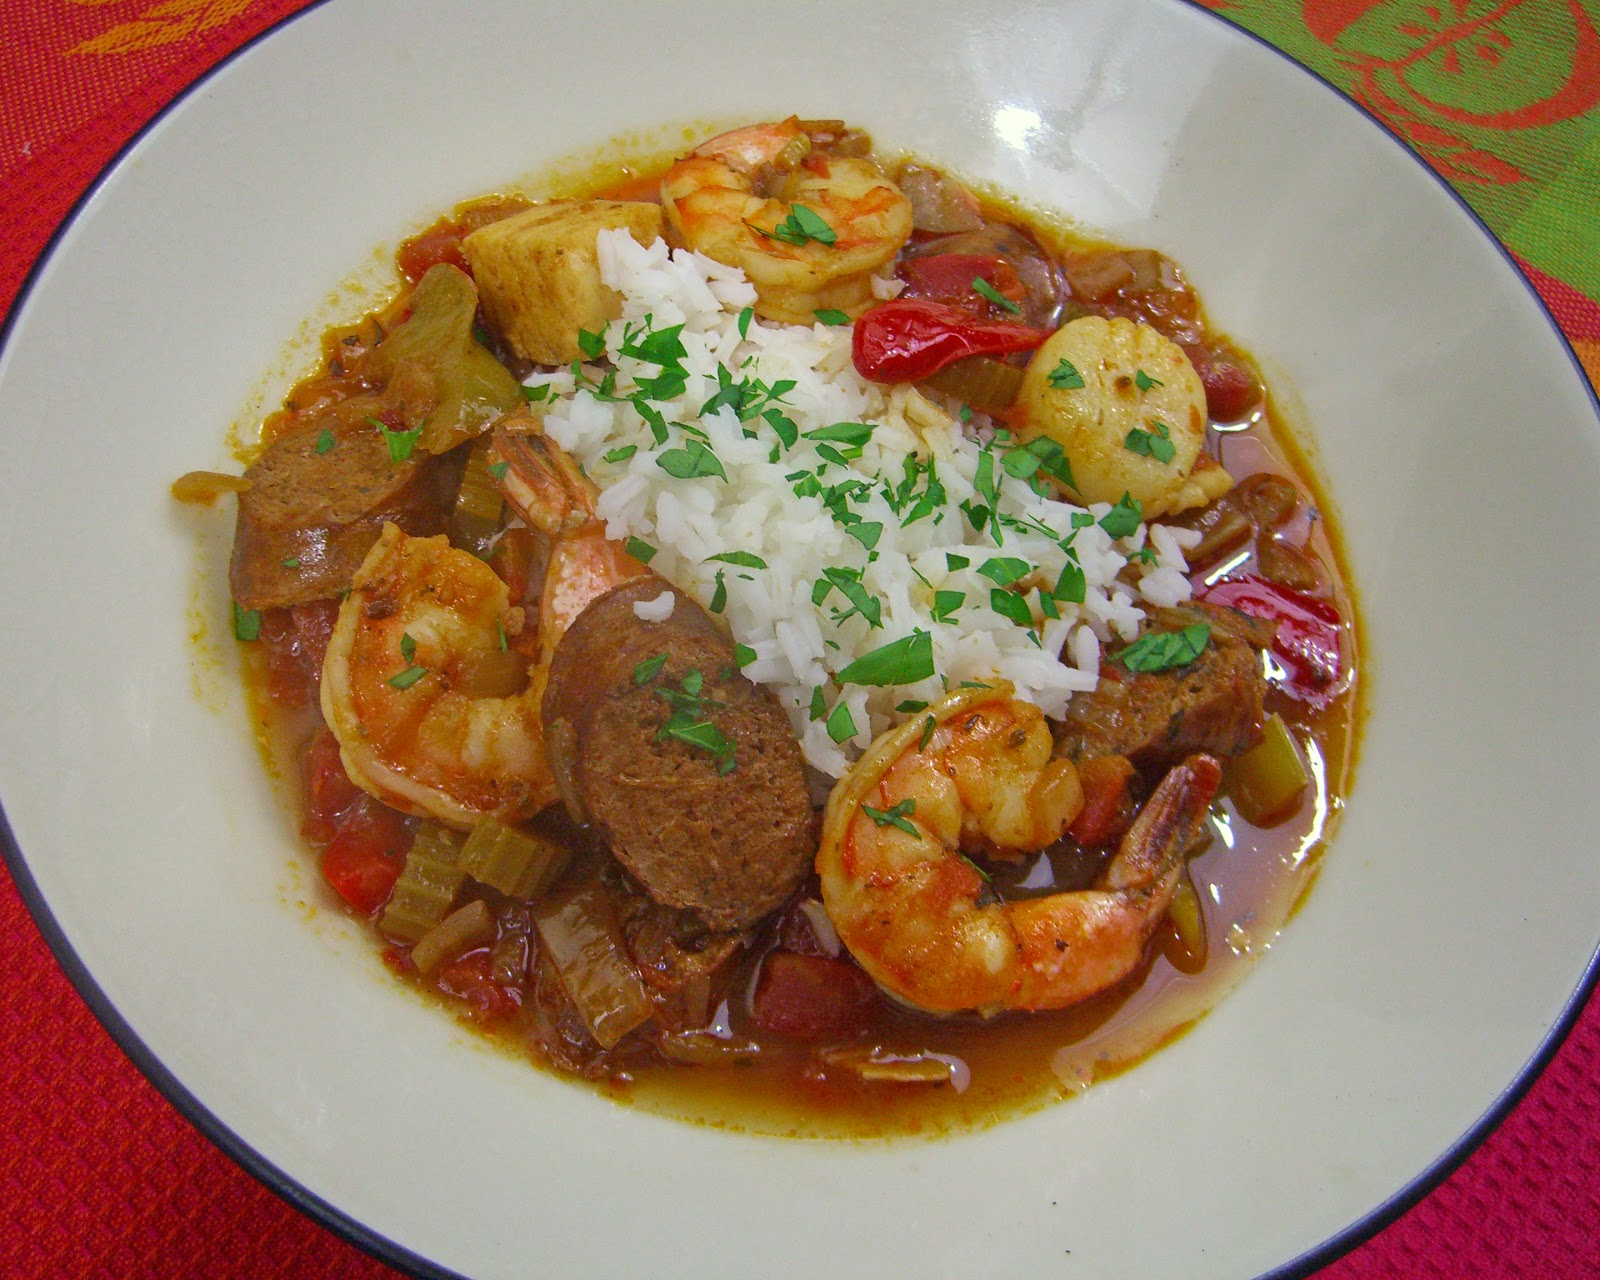 We Cook - You Cook : File Gumbo with Seafood and Andouille Sausage